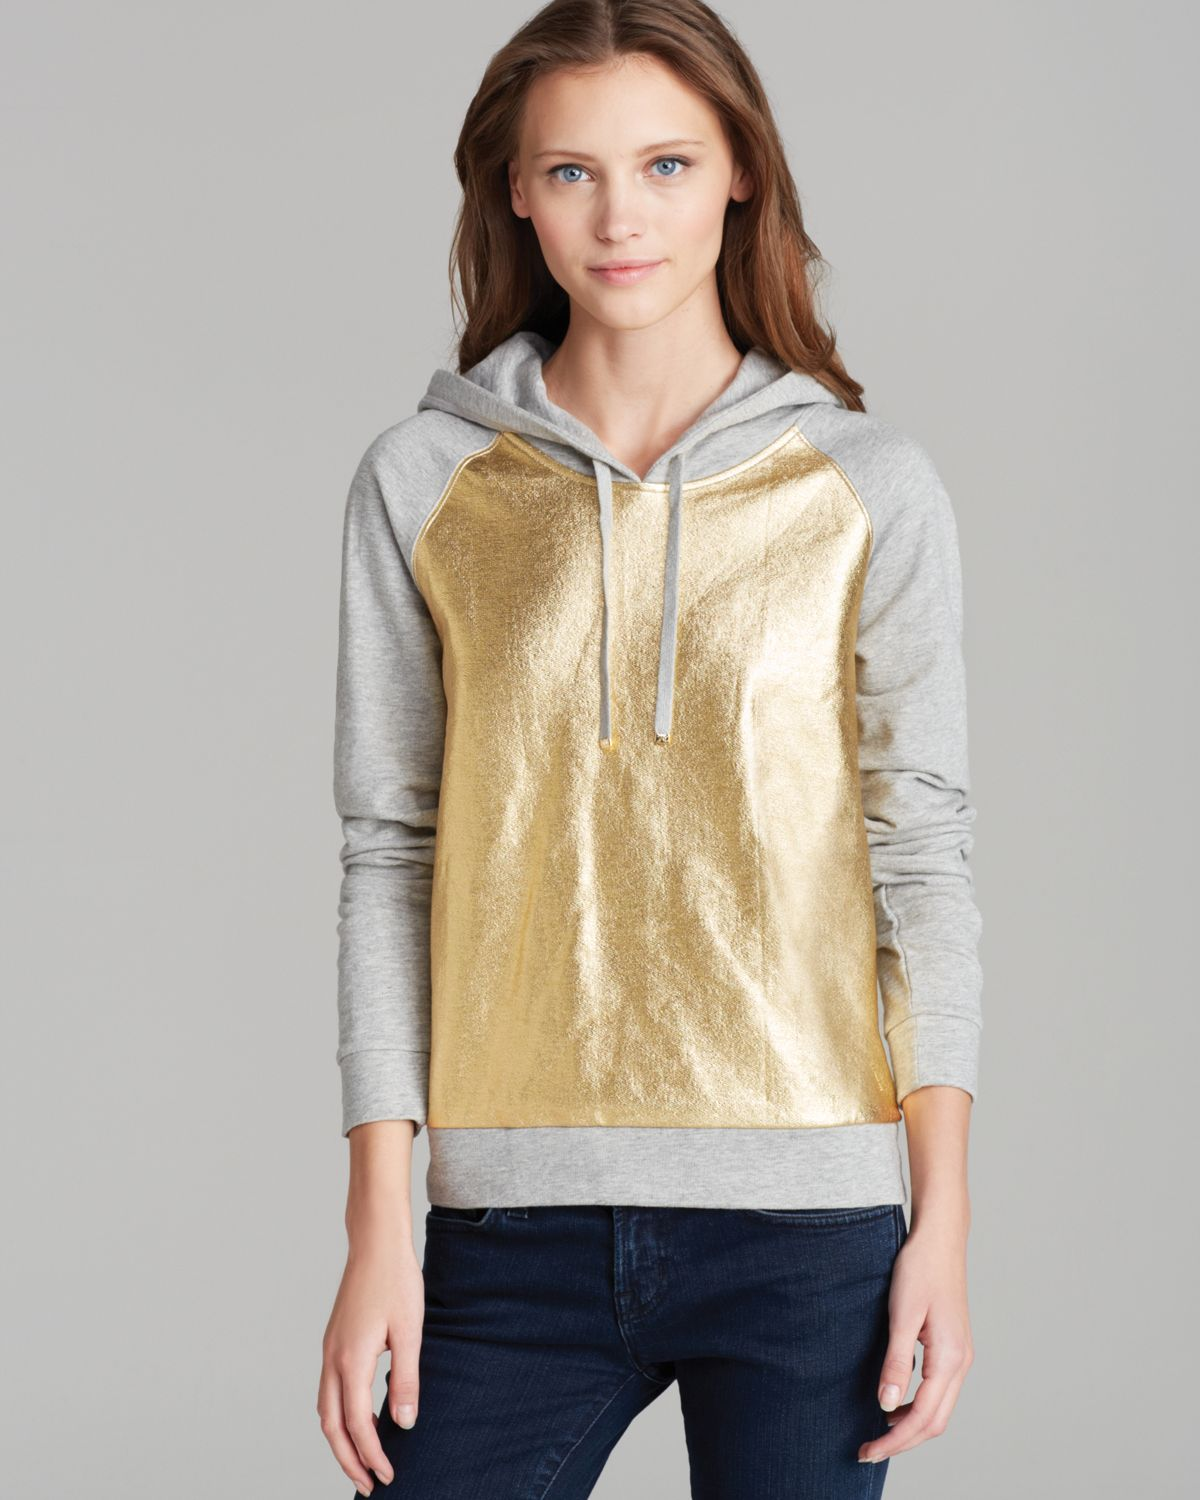 Lyst - Juicy Couture Hoodie Metallic Pullover in Gray